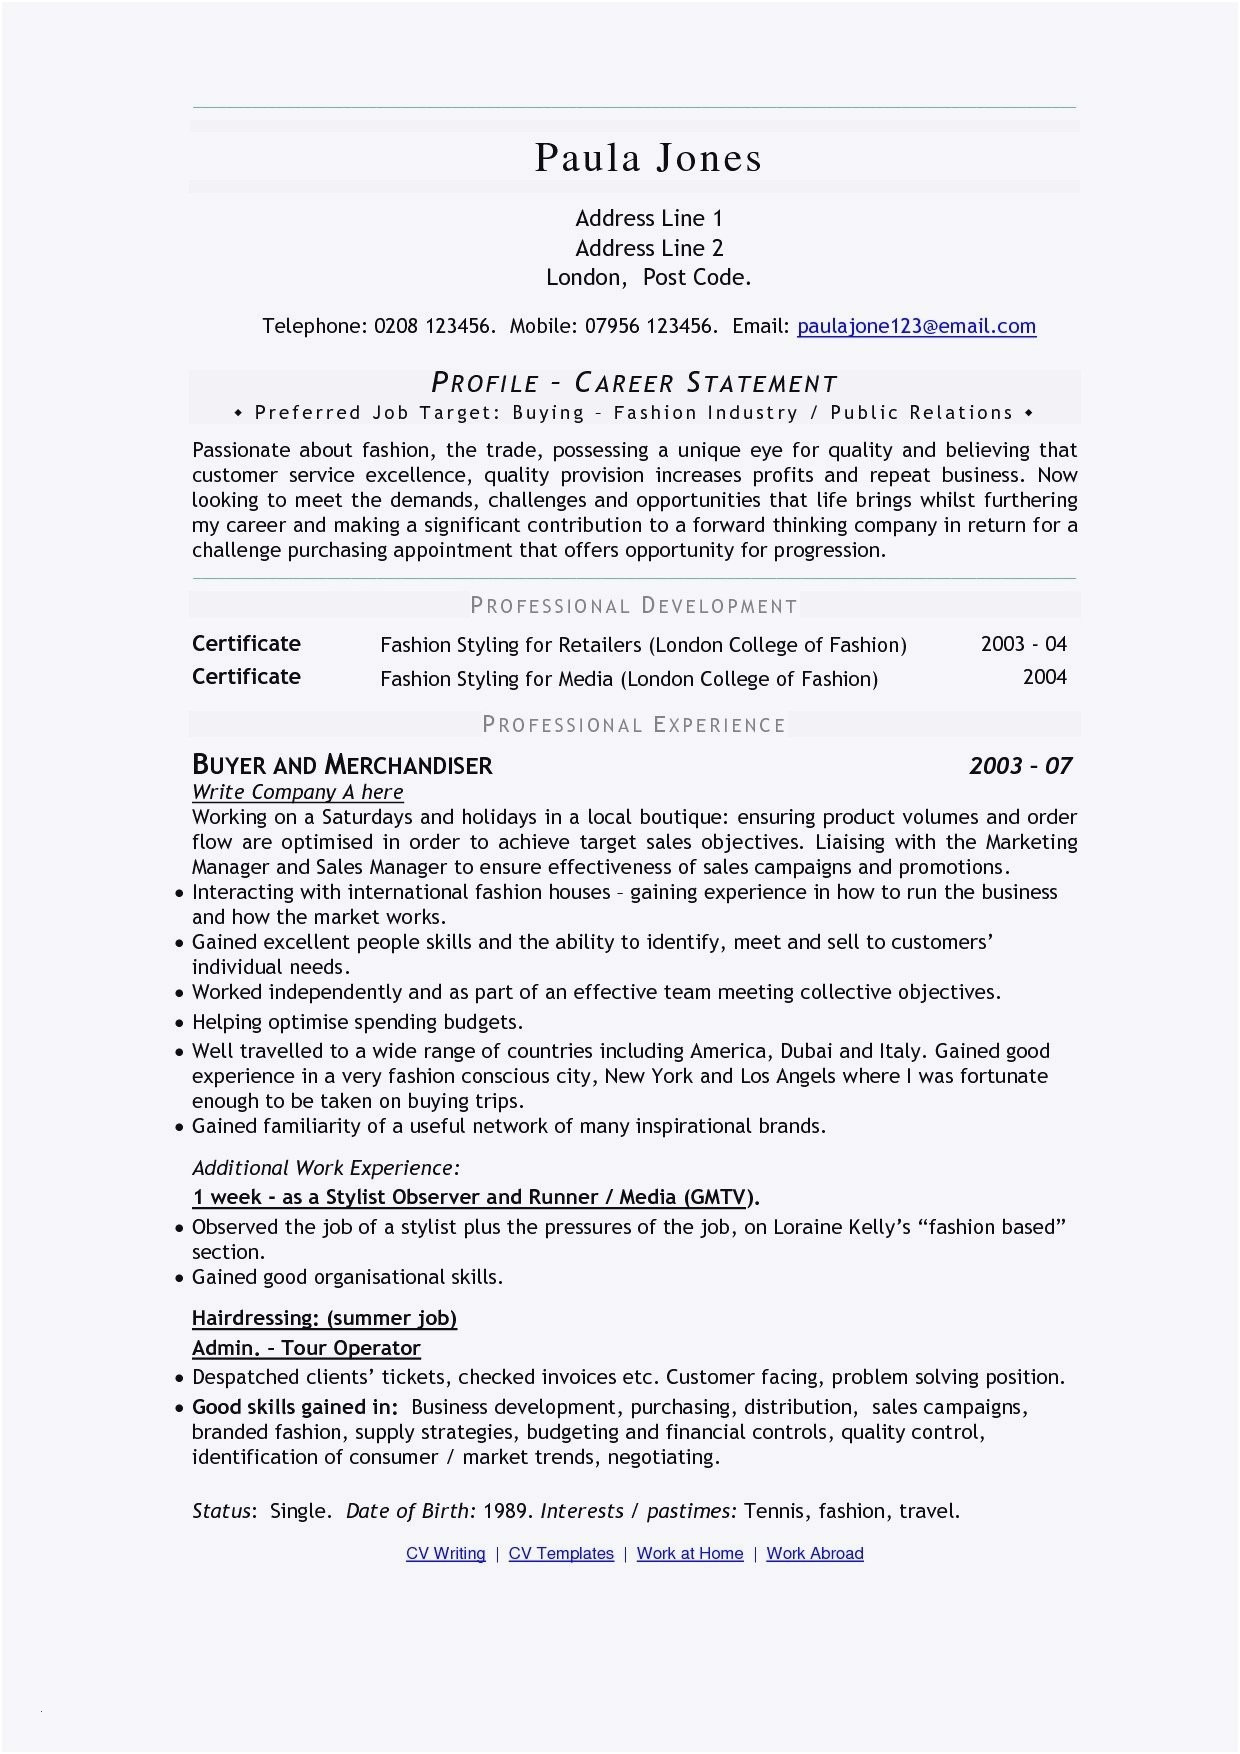 Resume for Buyer - Cv Versus Resume Awesome Nanny Resumes Nanny Resume 0d Frisch